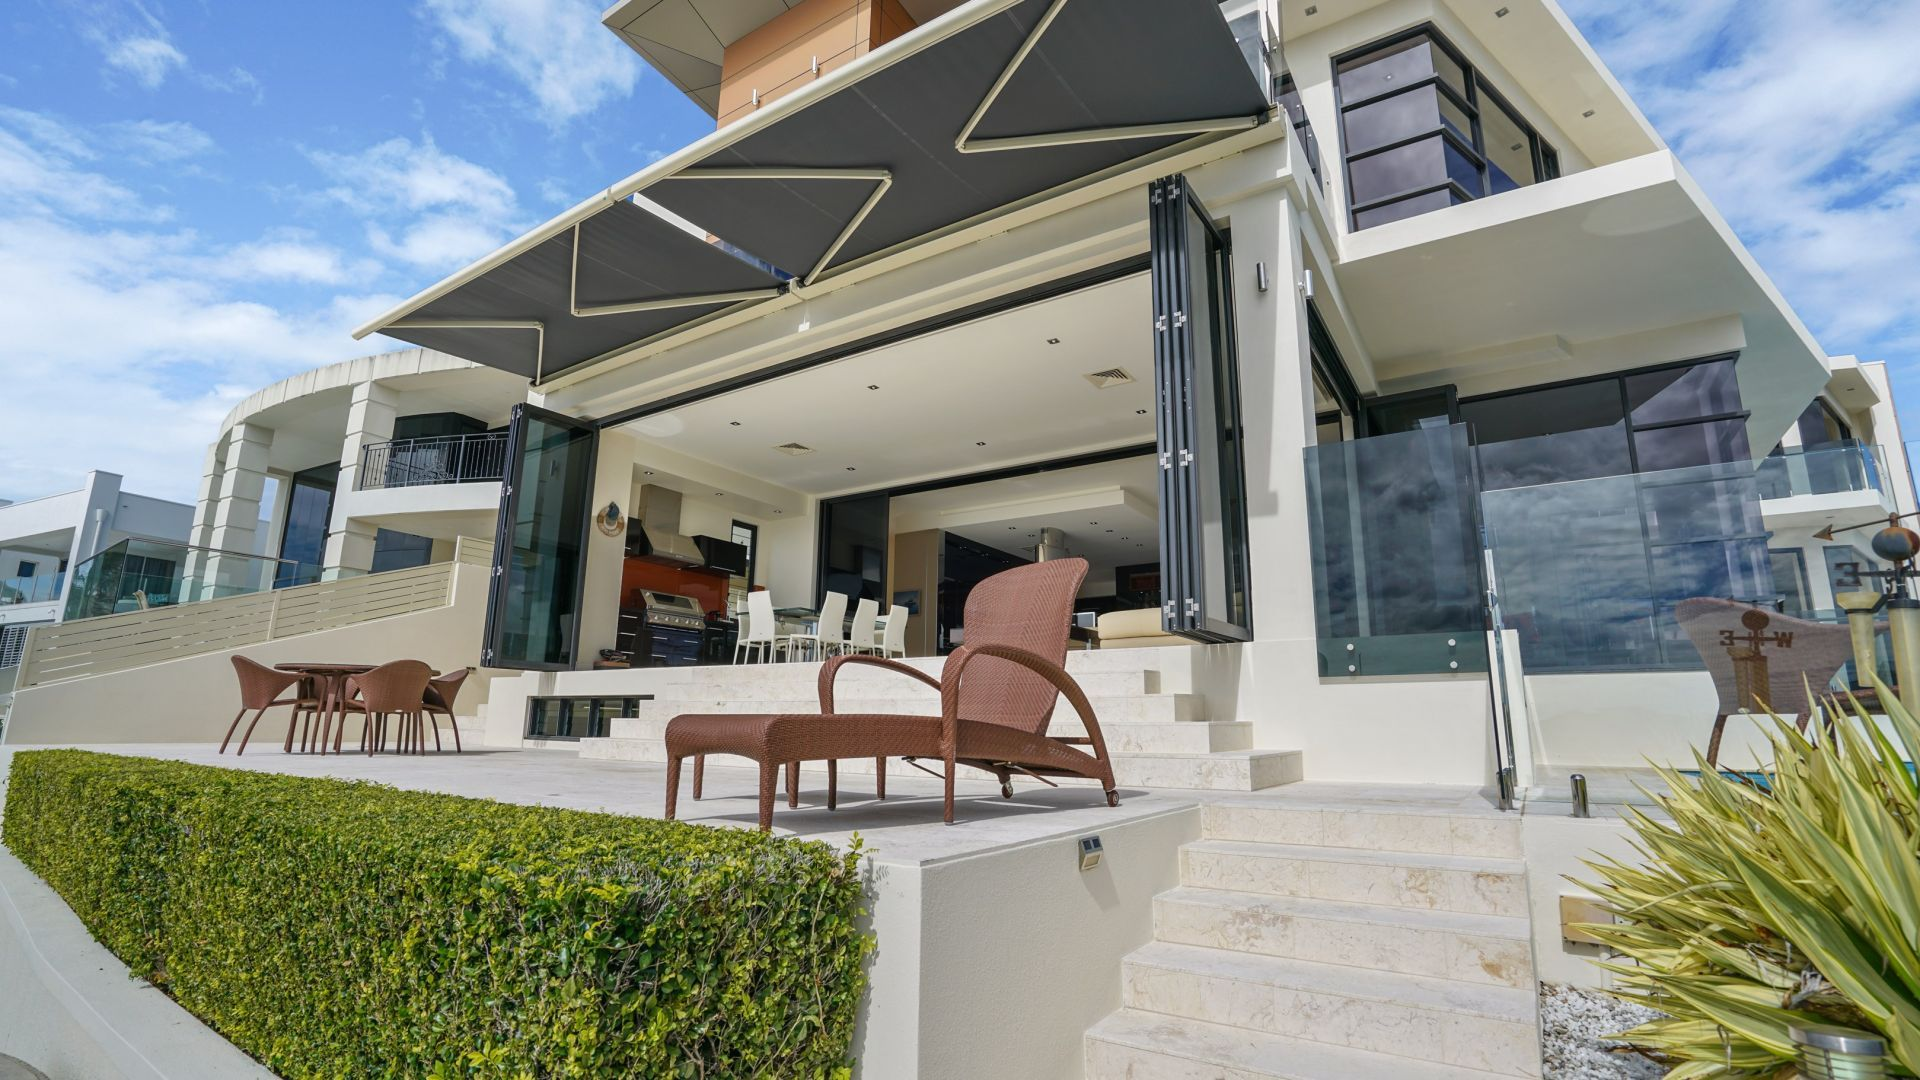 Retractable Motorised Folding Arm Awning Roof Systems Brisbane Awning Roof Roofing Systems Awning